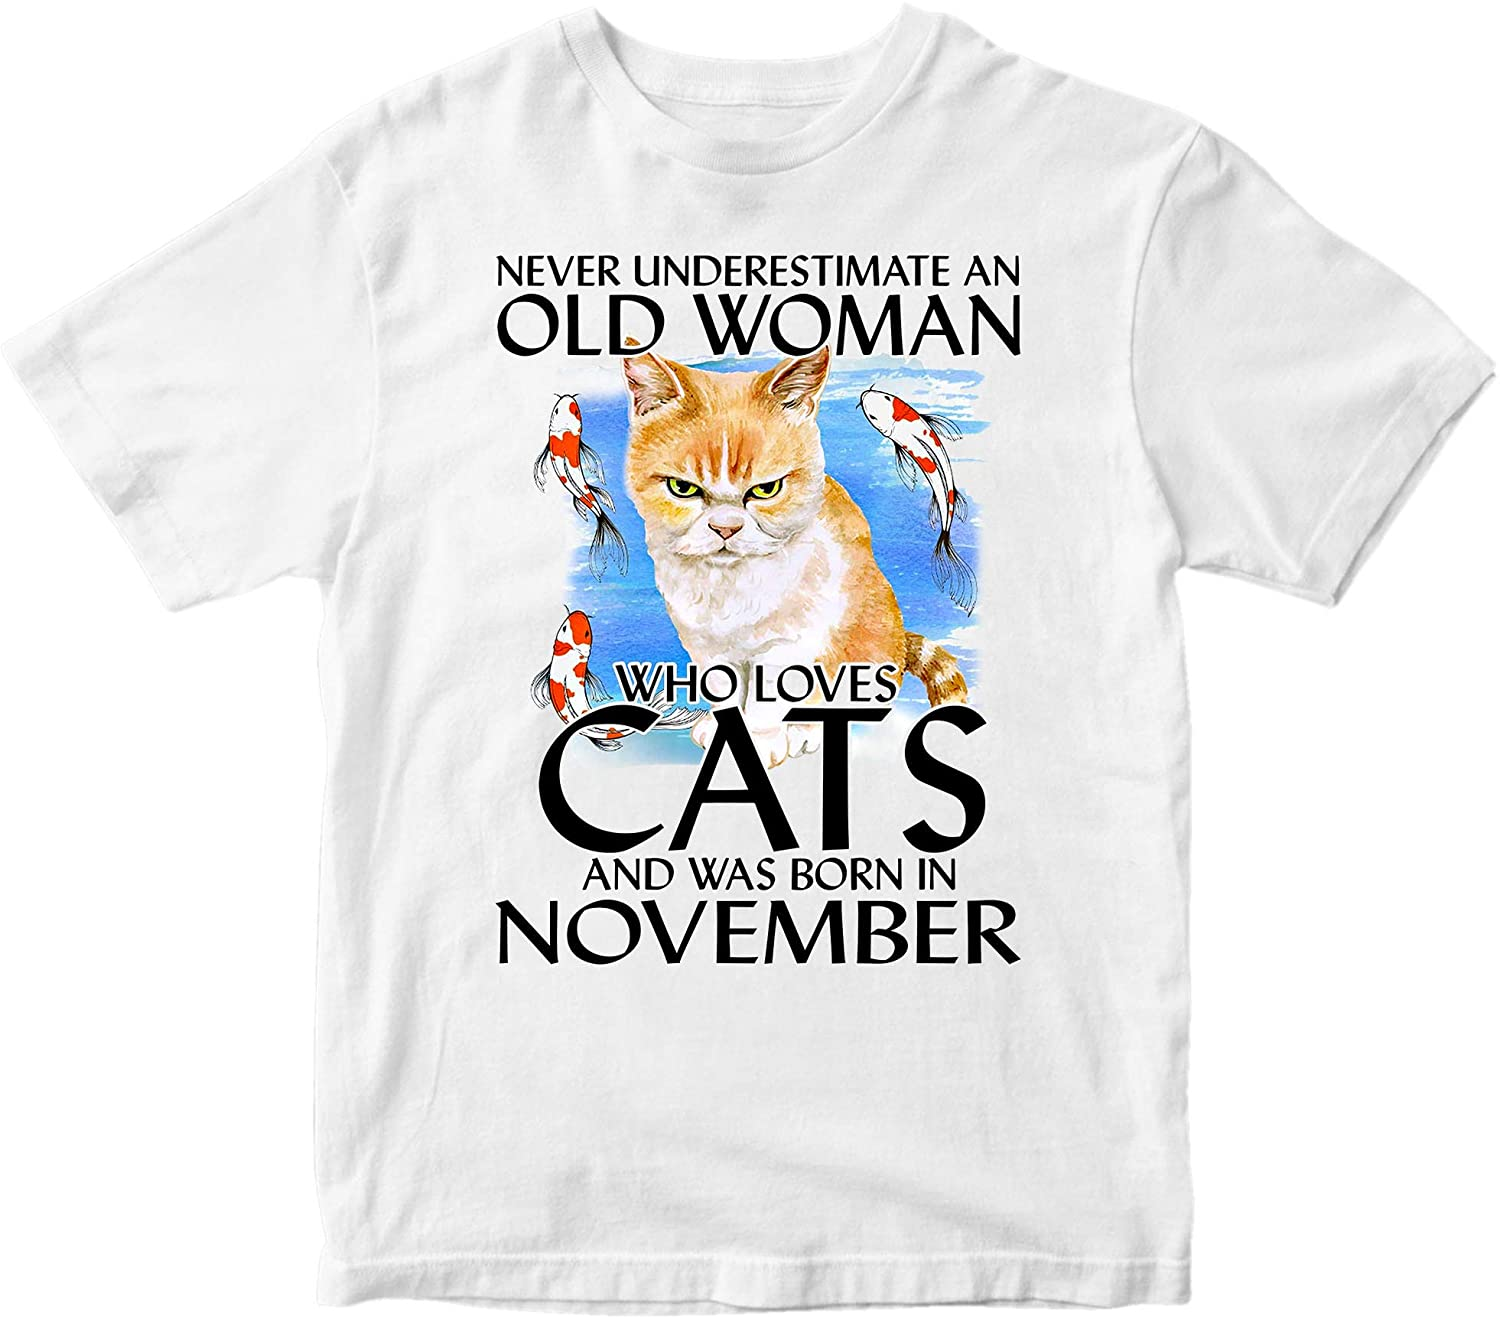 Never Underestimate A Woman Who Loves Cats and was Born in November Grumpy Cat Birthday T-Shirt, Gift for Women Girls, Cat Lovers Shirt. Sport Grey